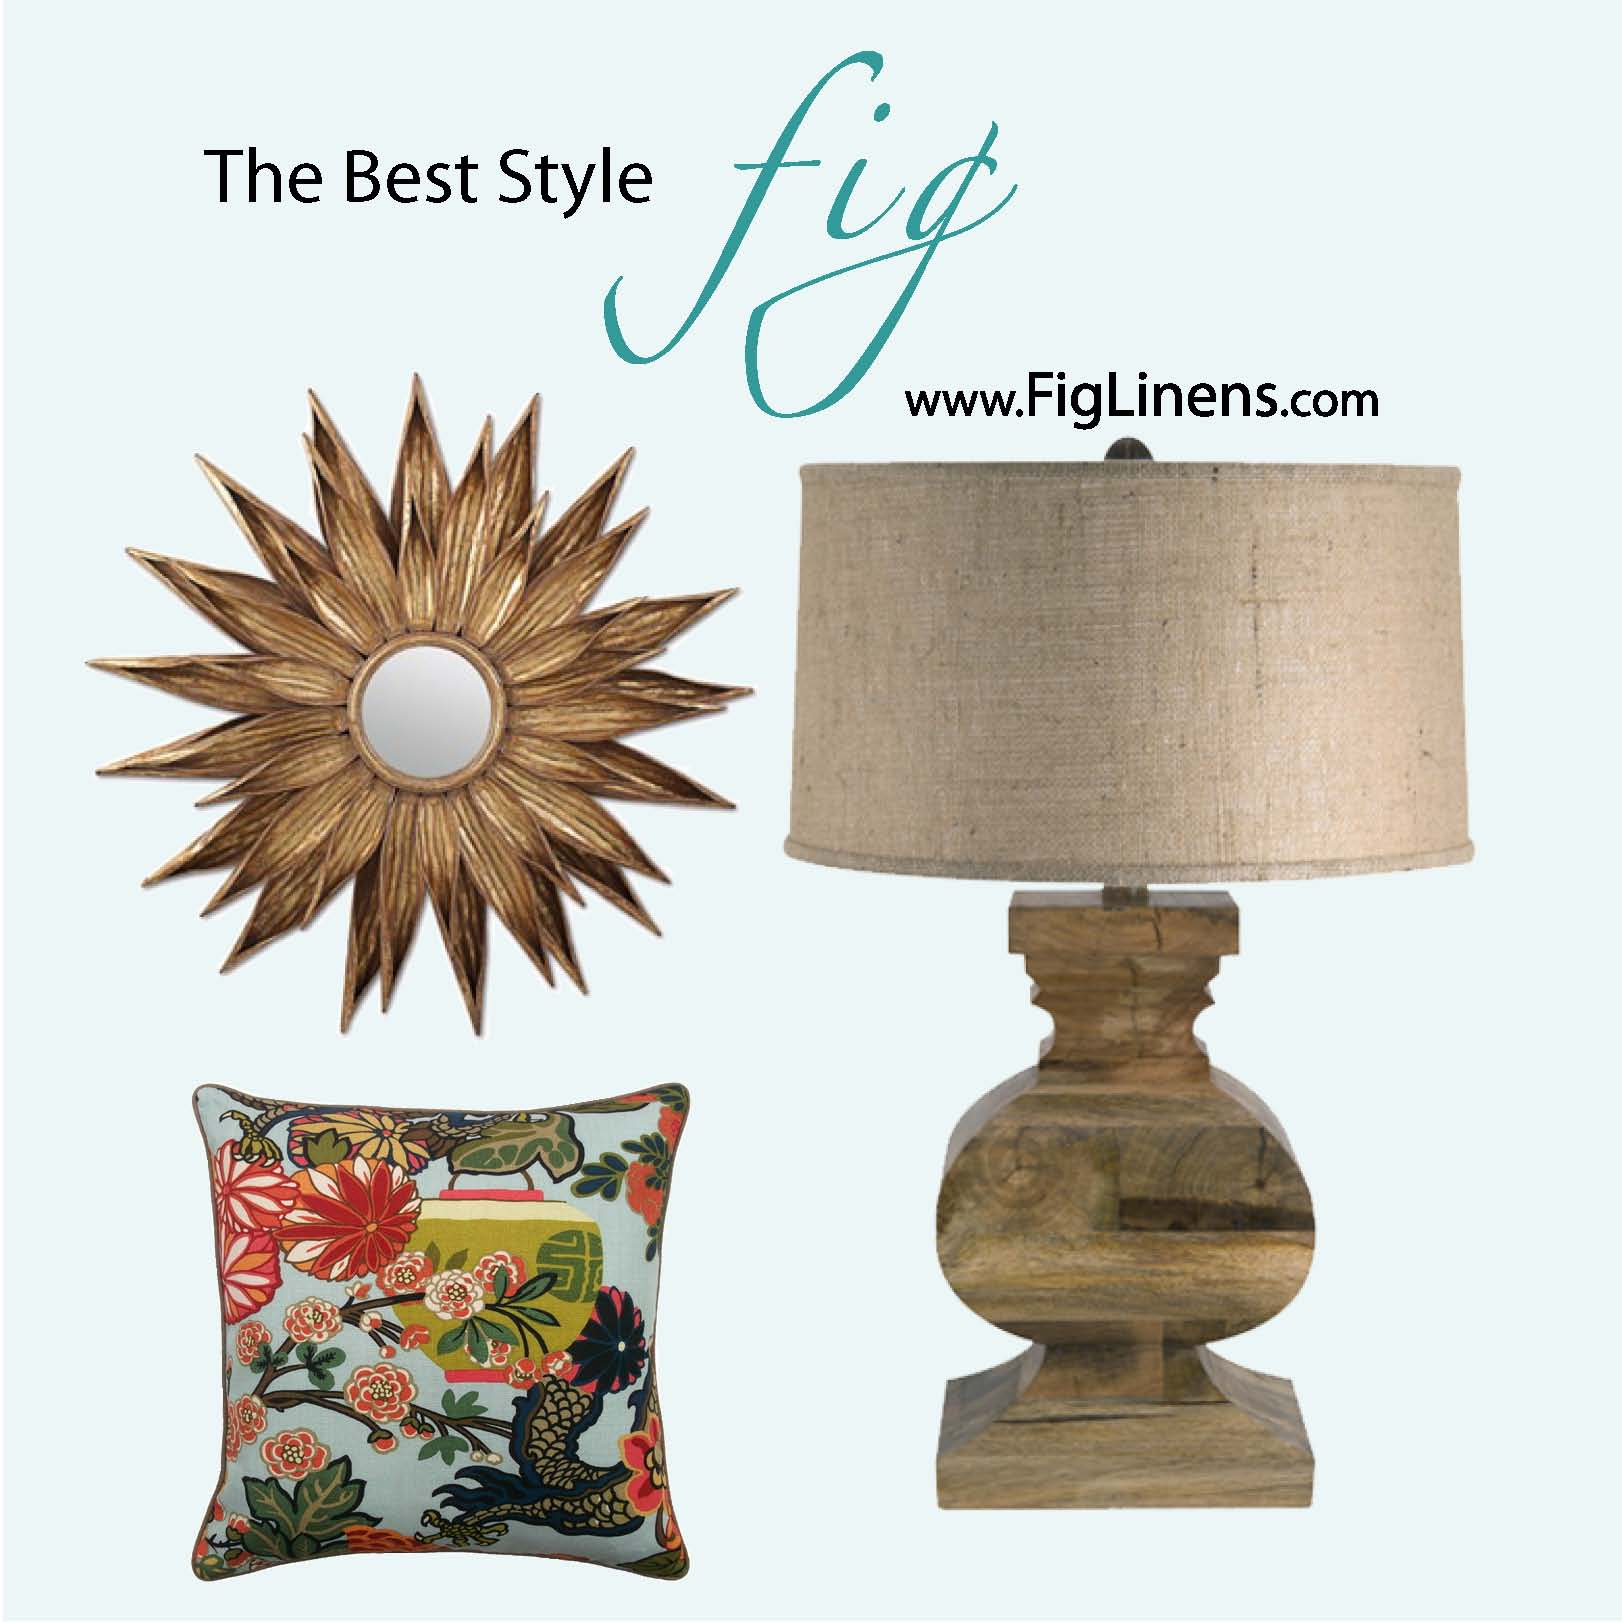 The Best Style and Service... at FigLinens.com